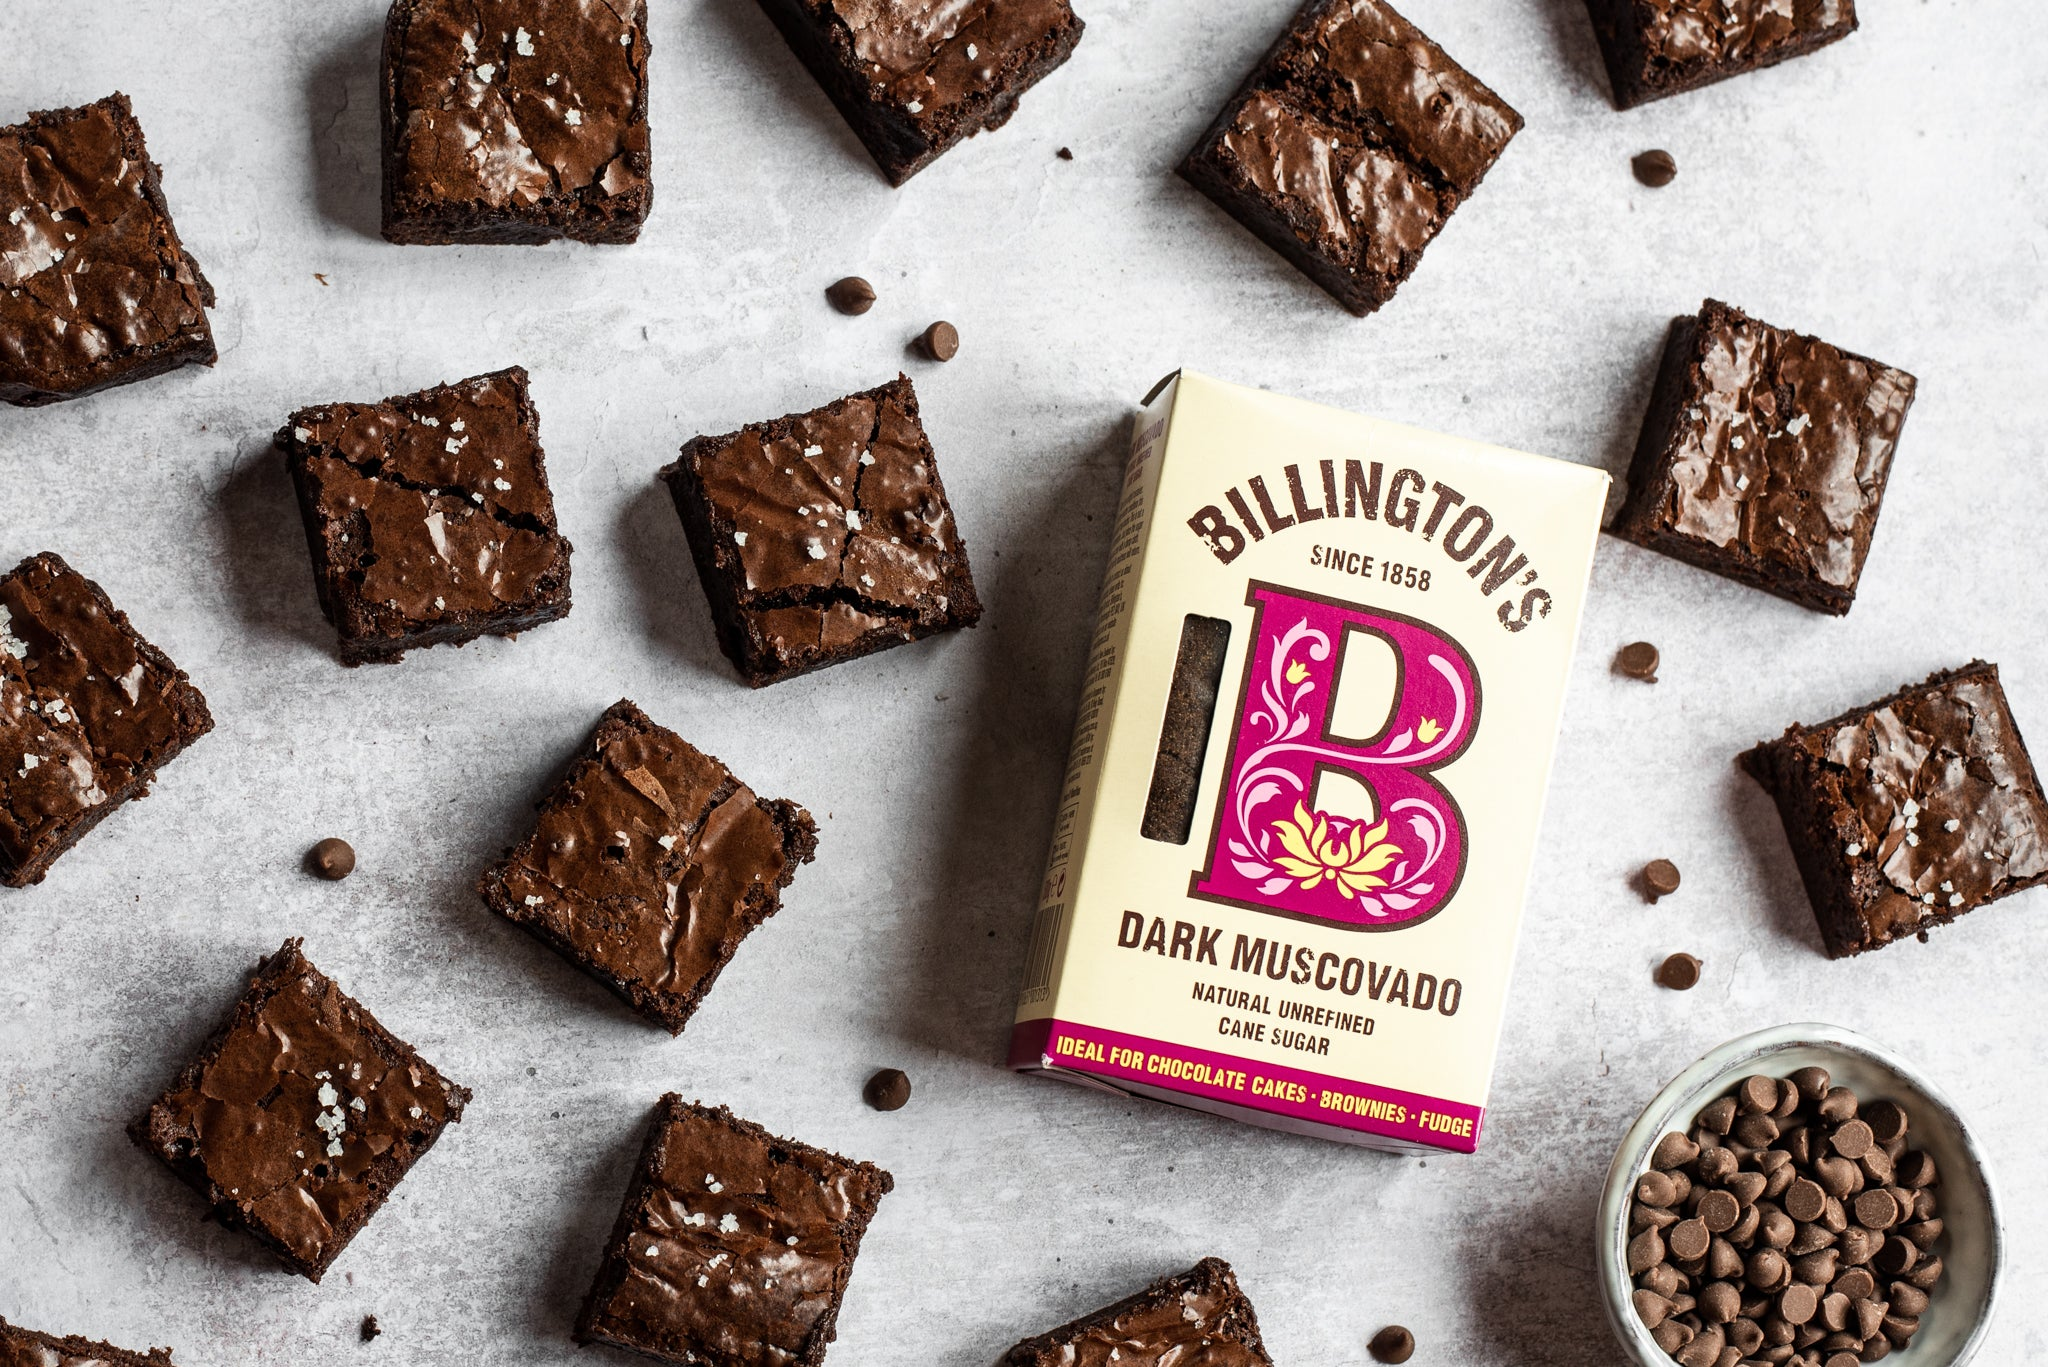 A top down view of chocolate brownies next to a packet of billingtons dark muscovado sugar